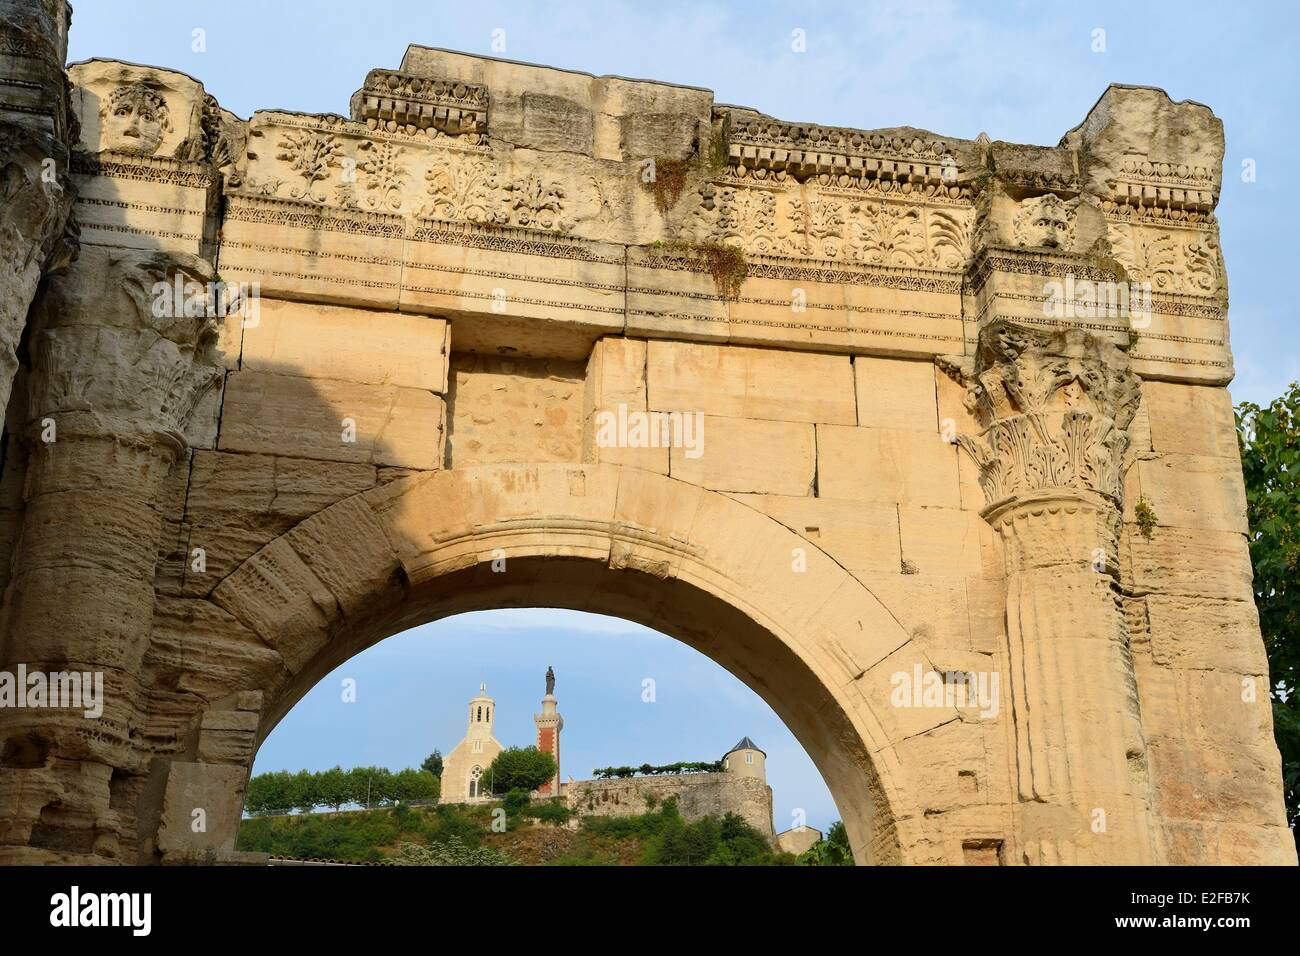 France, Isere, Vienne, portico of the Cybele archaeological garden - Stock Image